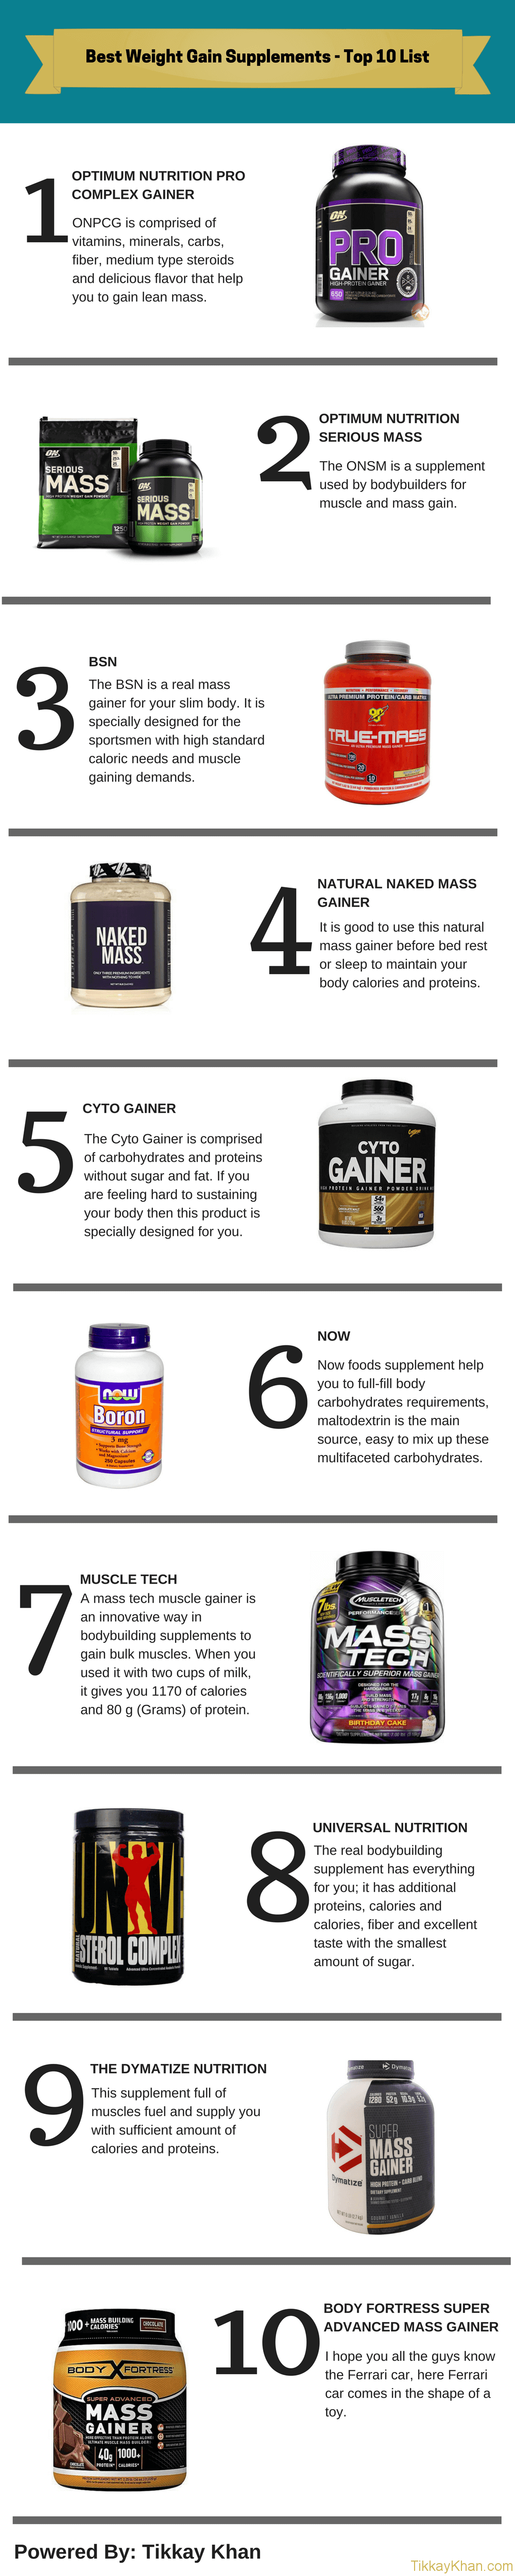 Weight Gain Supplements Infographic